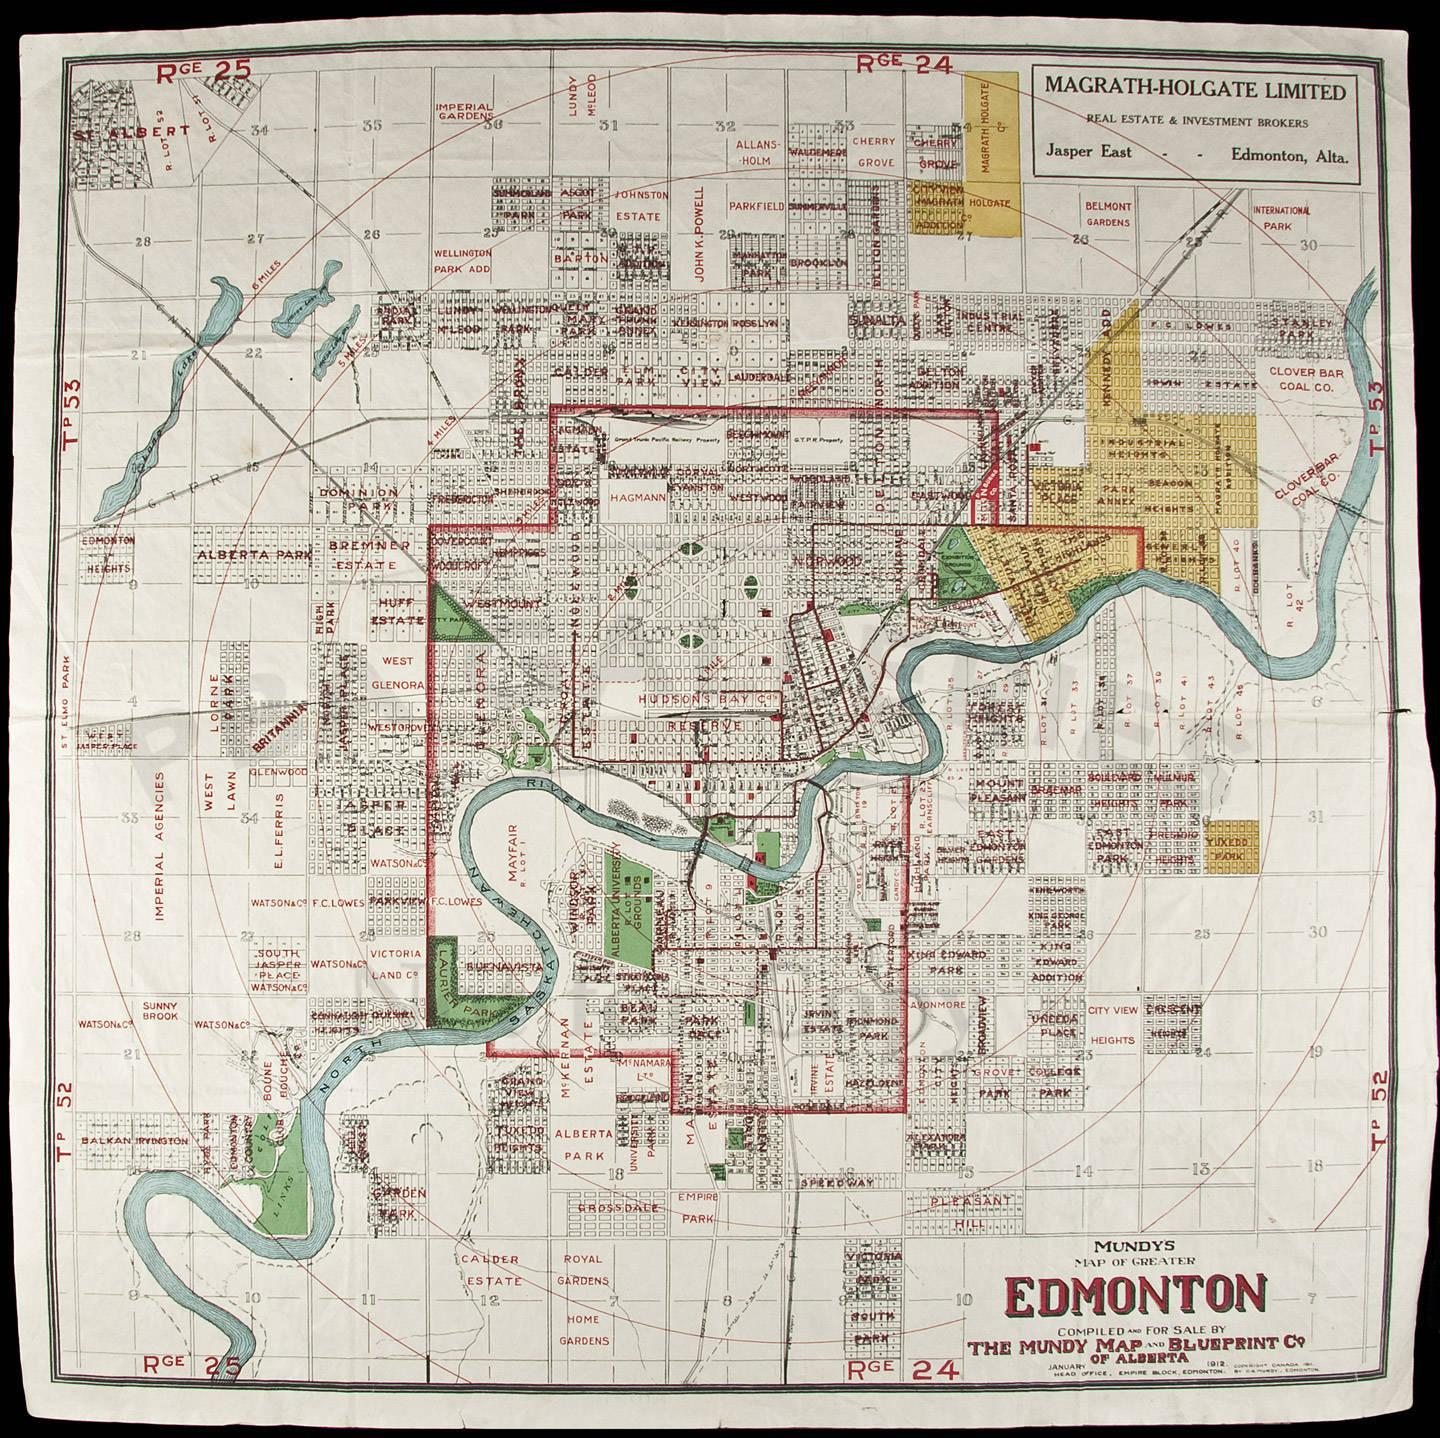 Mundys map of greater edmonton compiled and for sale by the mundy mundys map of greater edmonton compiled and for sale by the mundy map and blueprint co of alberta price estimate 300 500 malvernweather Images